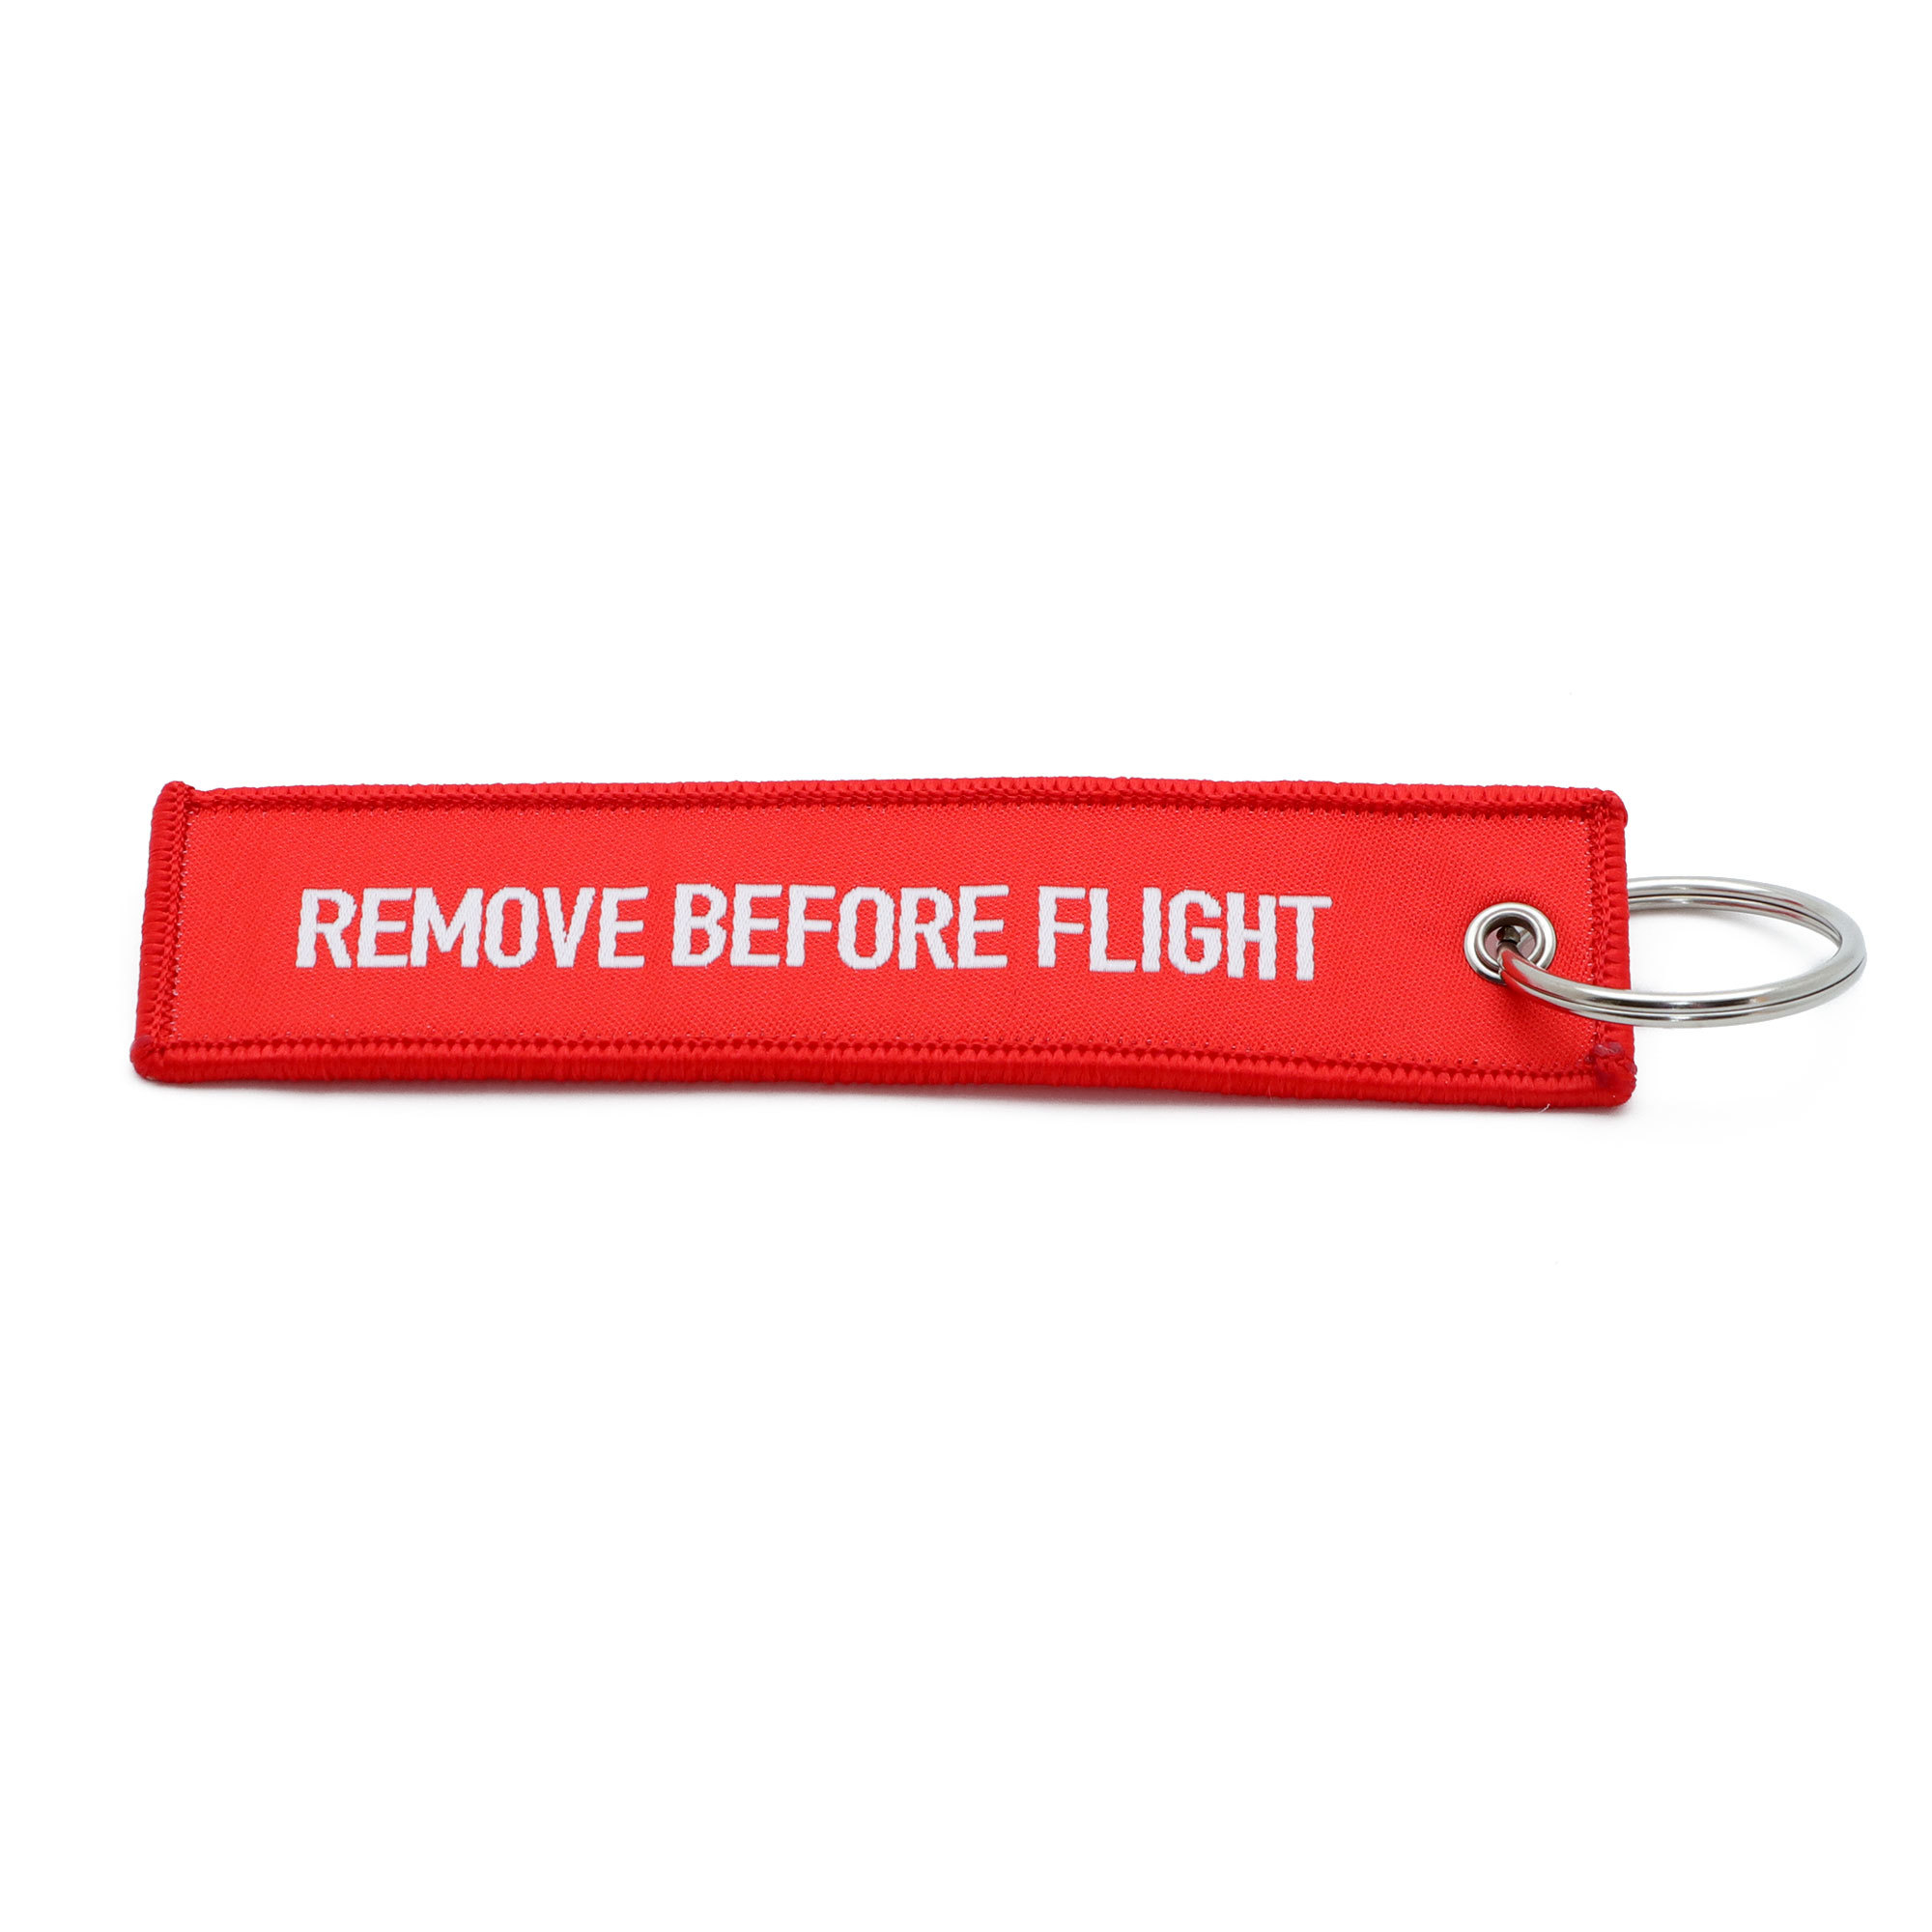 Брелок Remove Before Flight АК «Россия»